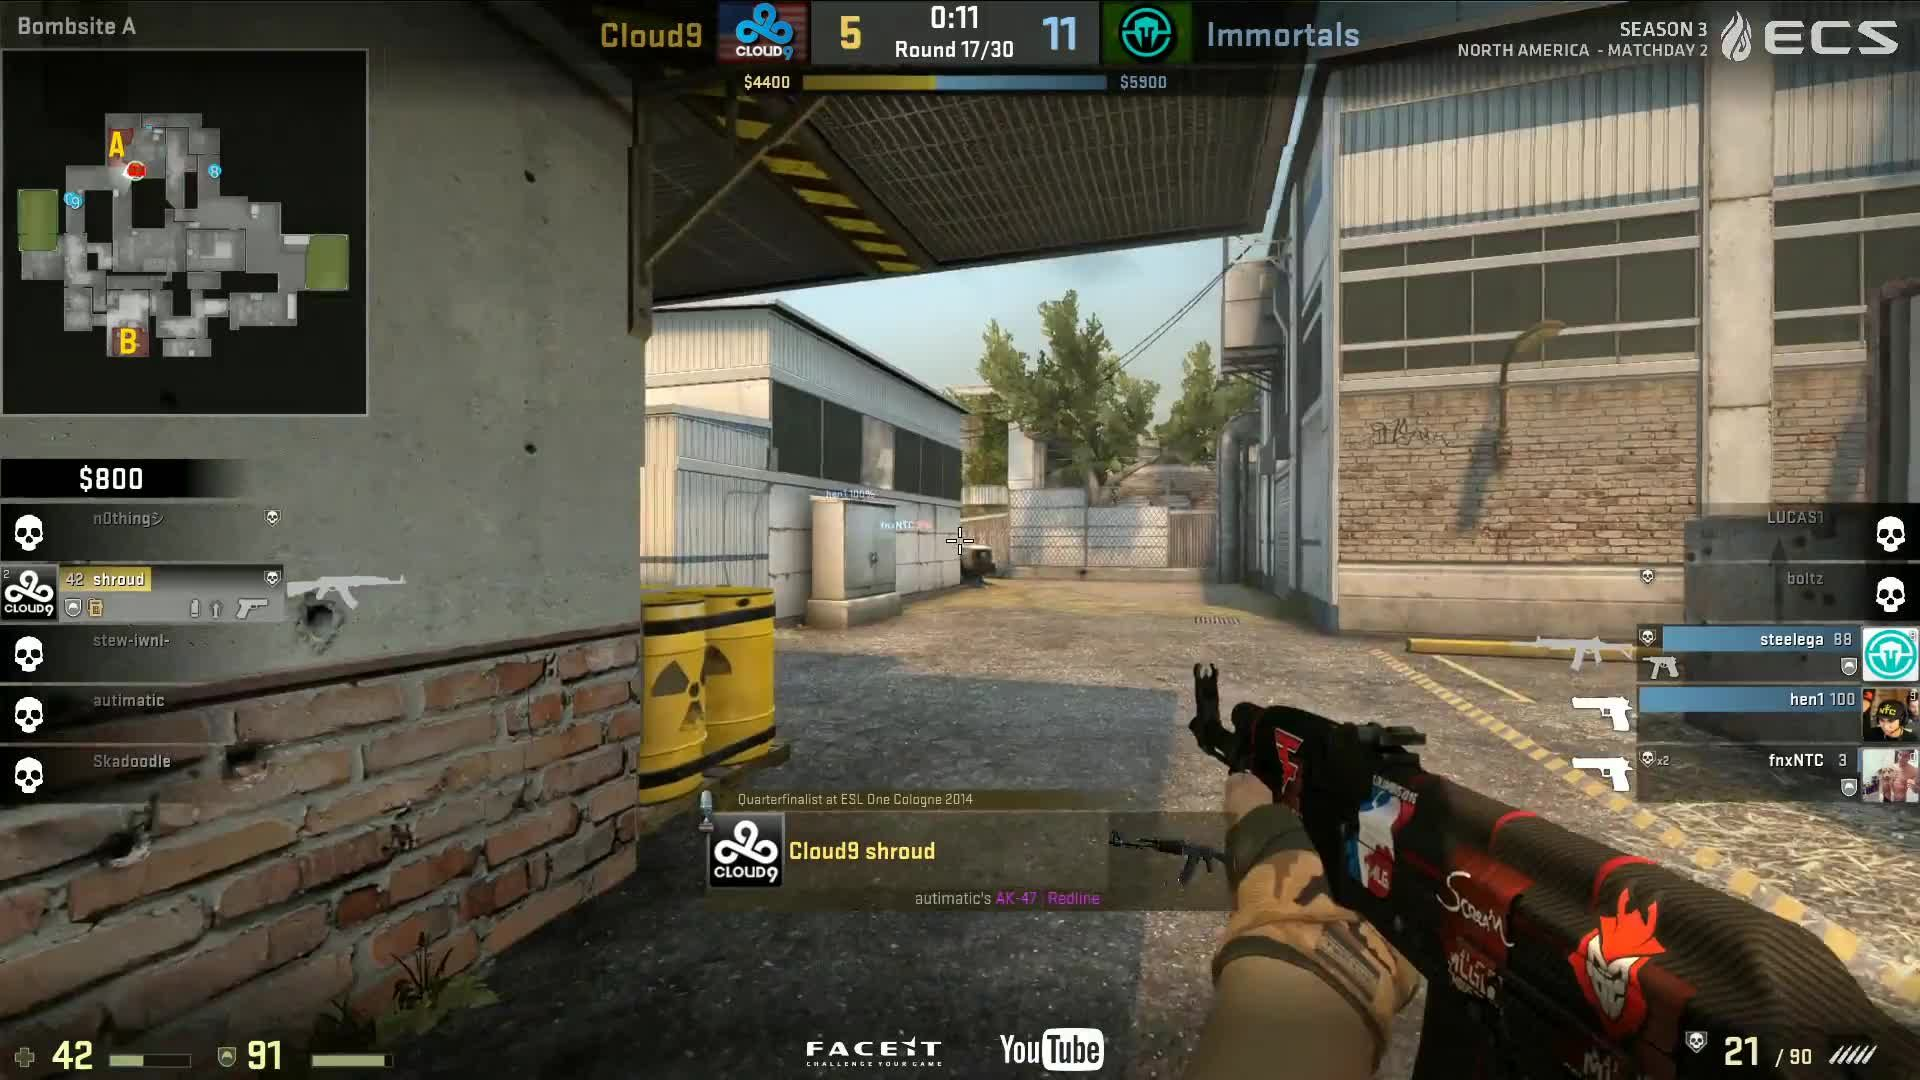 announcers fapping games globaloffensive csgo counterstrike